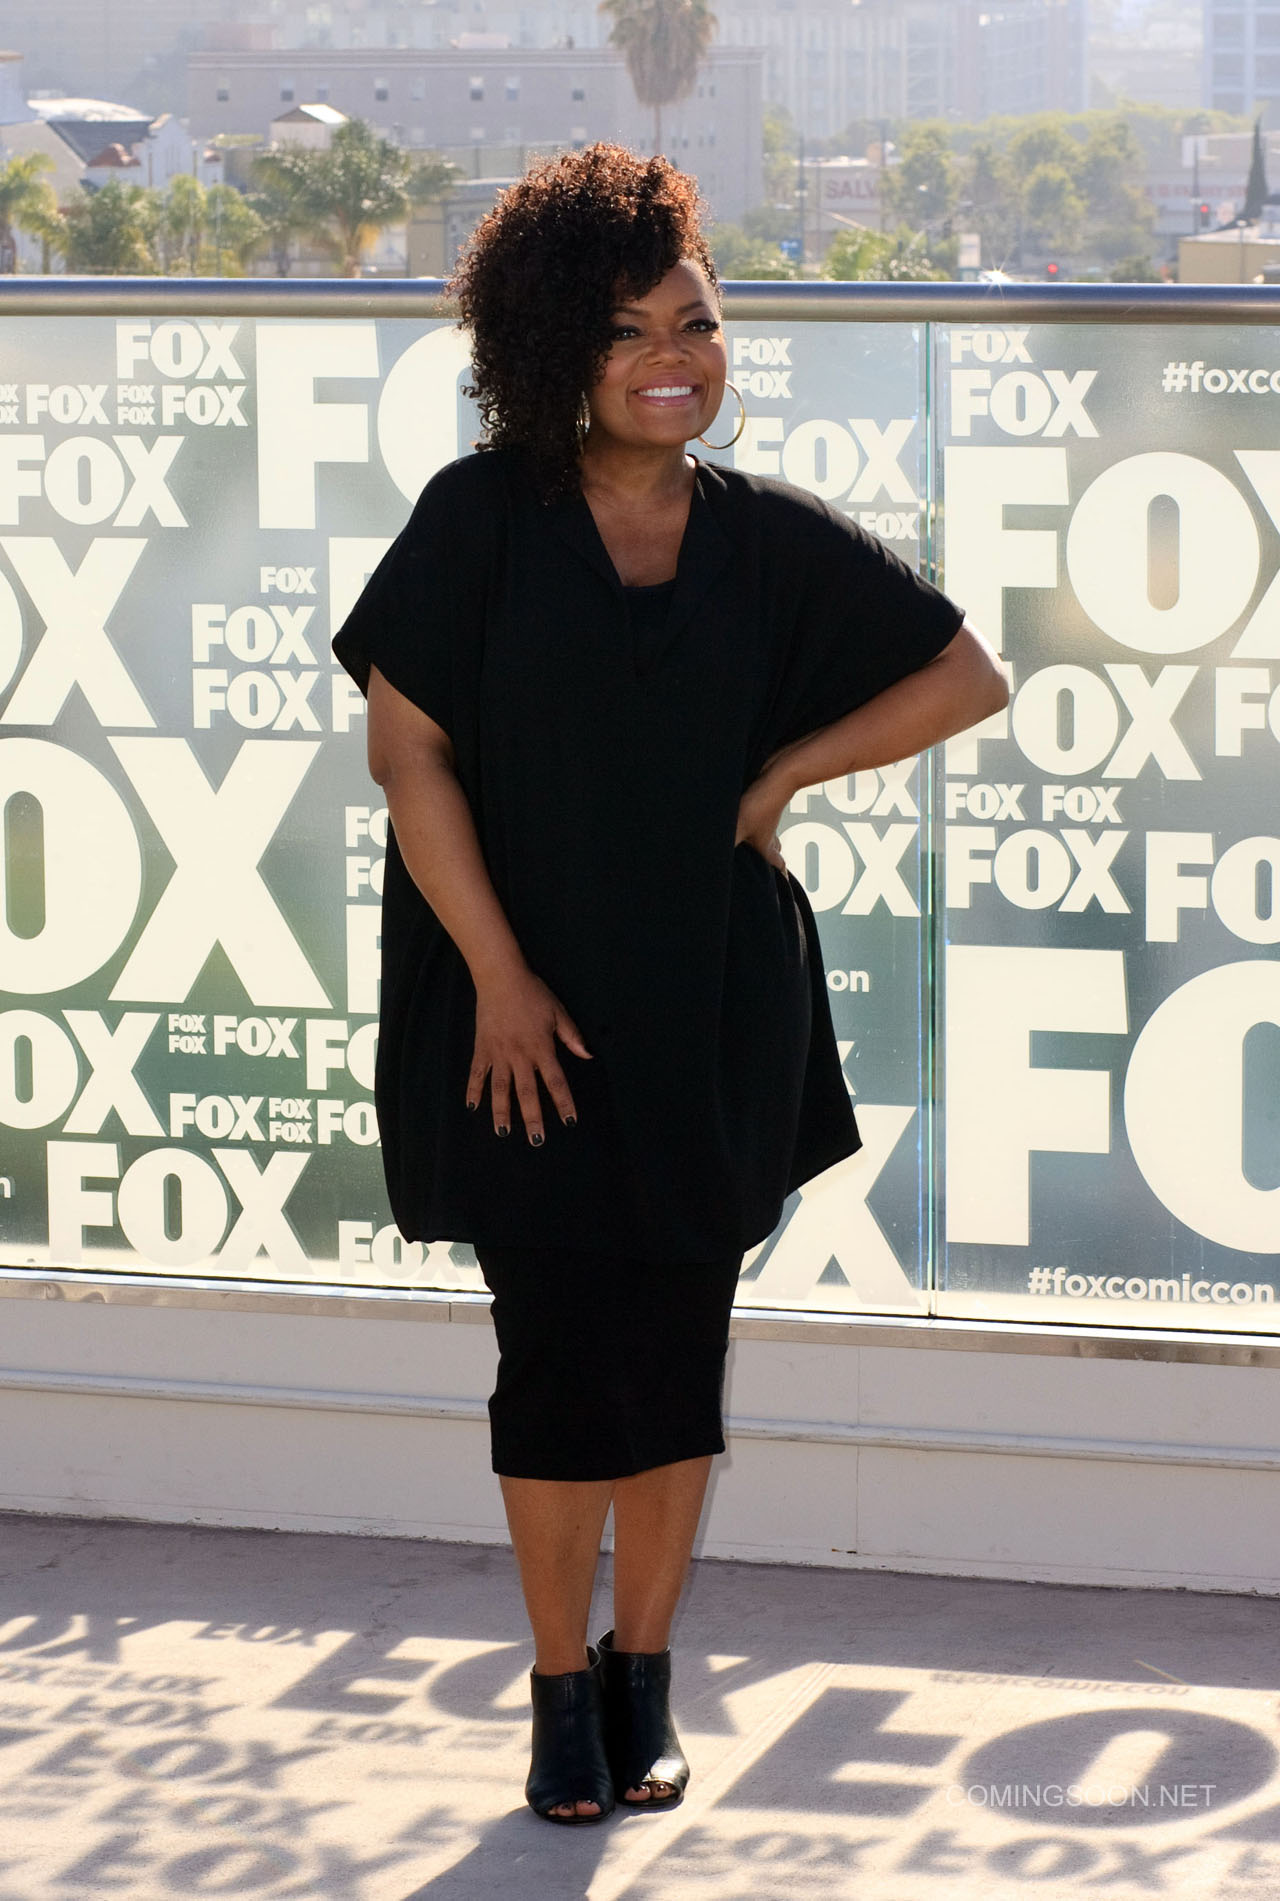 Fox Comic Con breakfast with the cast of Walking Dead and Outcast Featuring: Yvett Nicole Brown Where: San Diego, California, United States When: 22 Jul 2016 Credit: Tony Forte/WENN